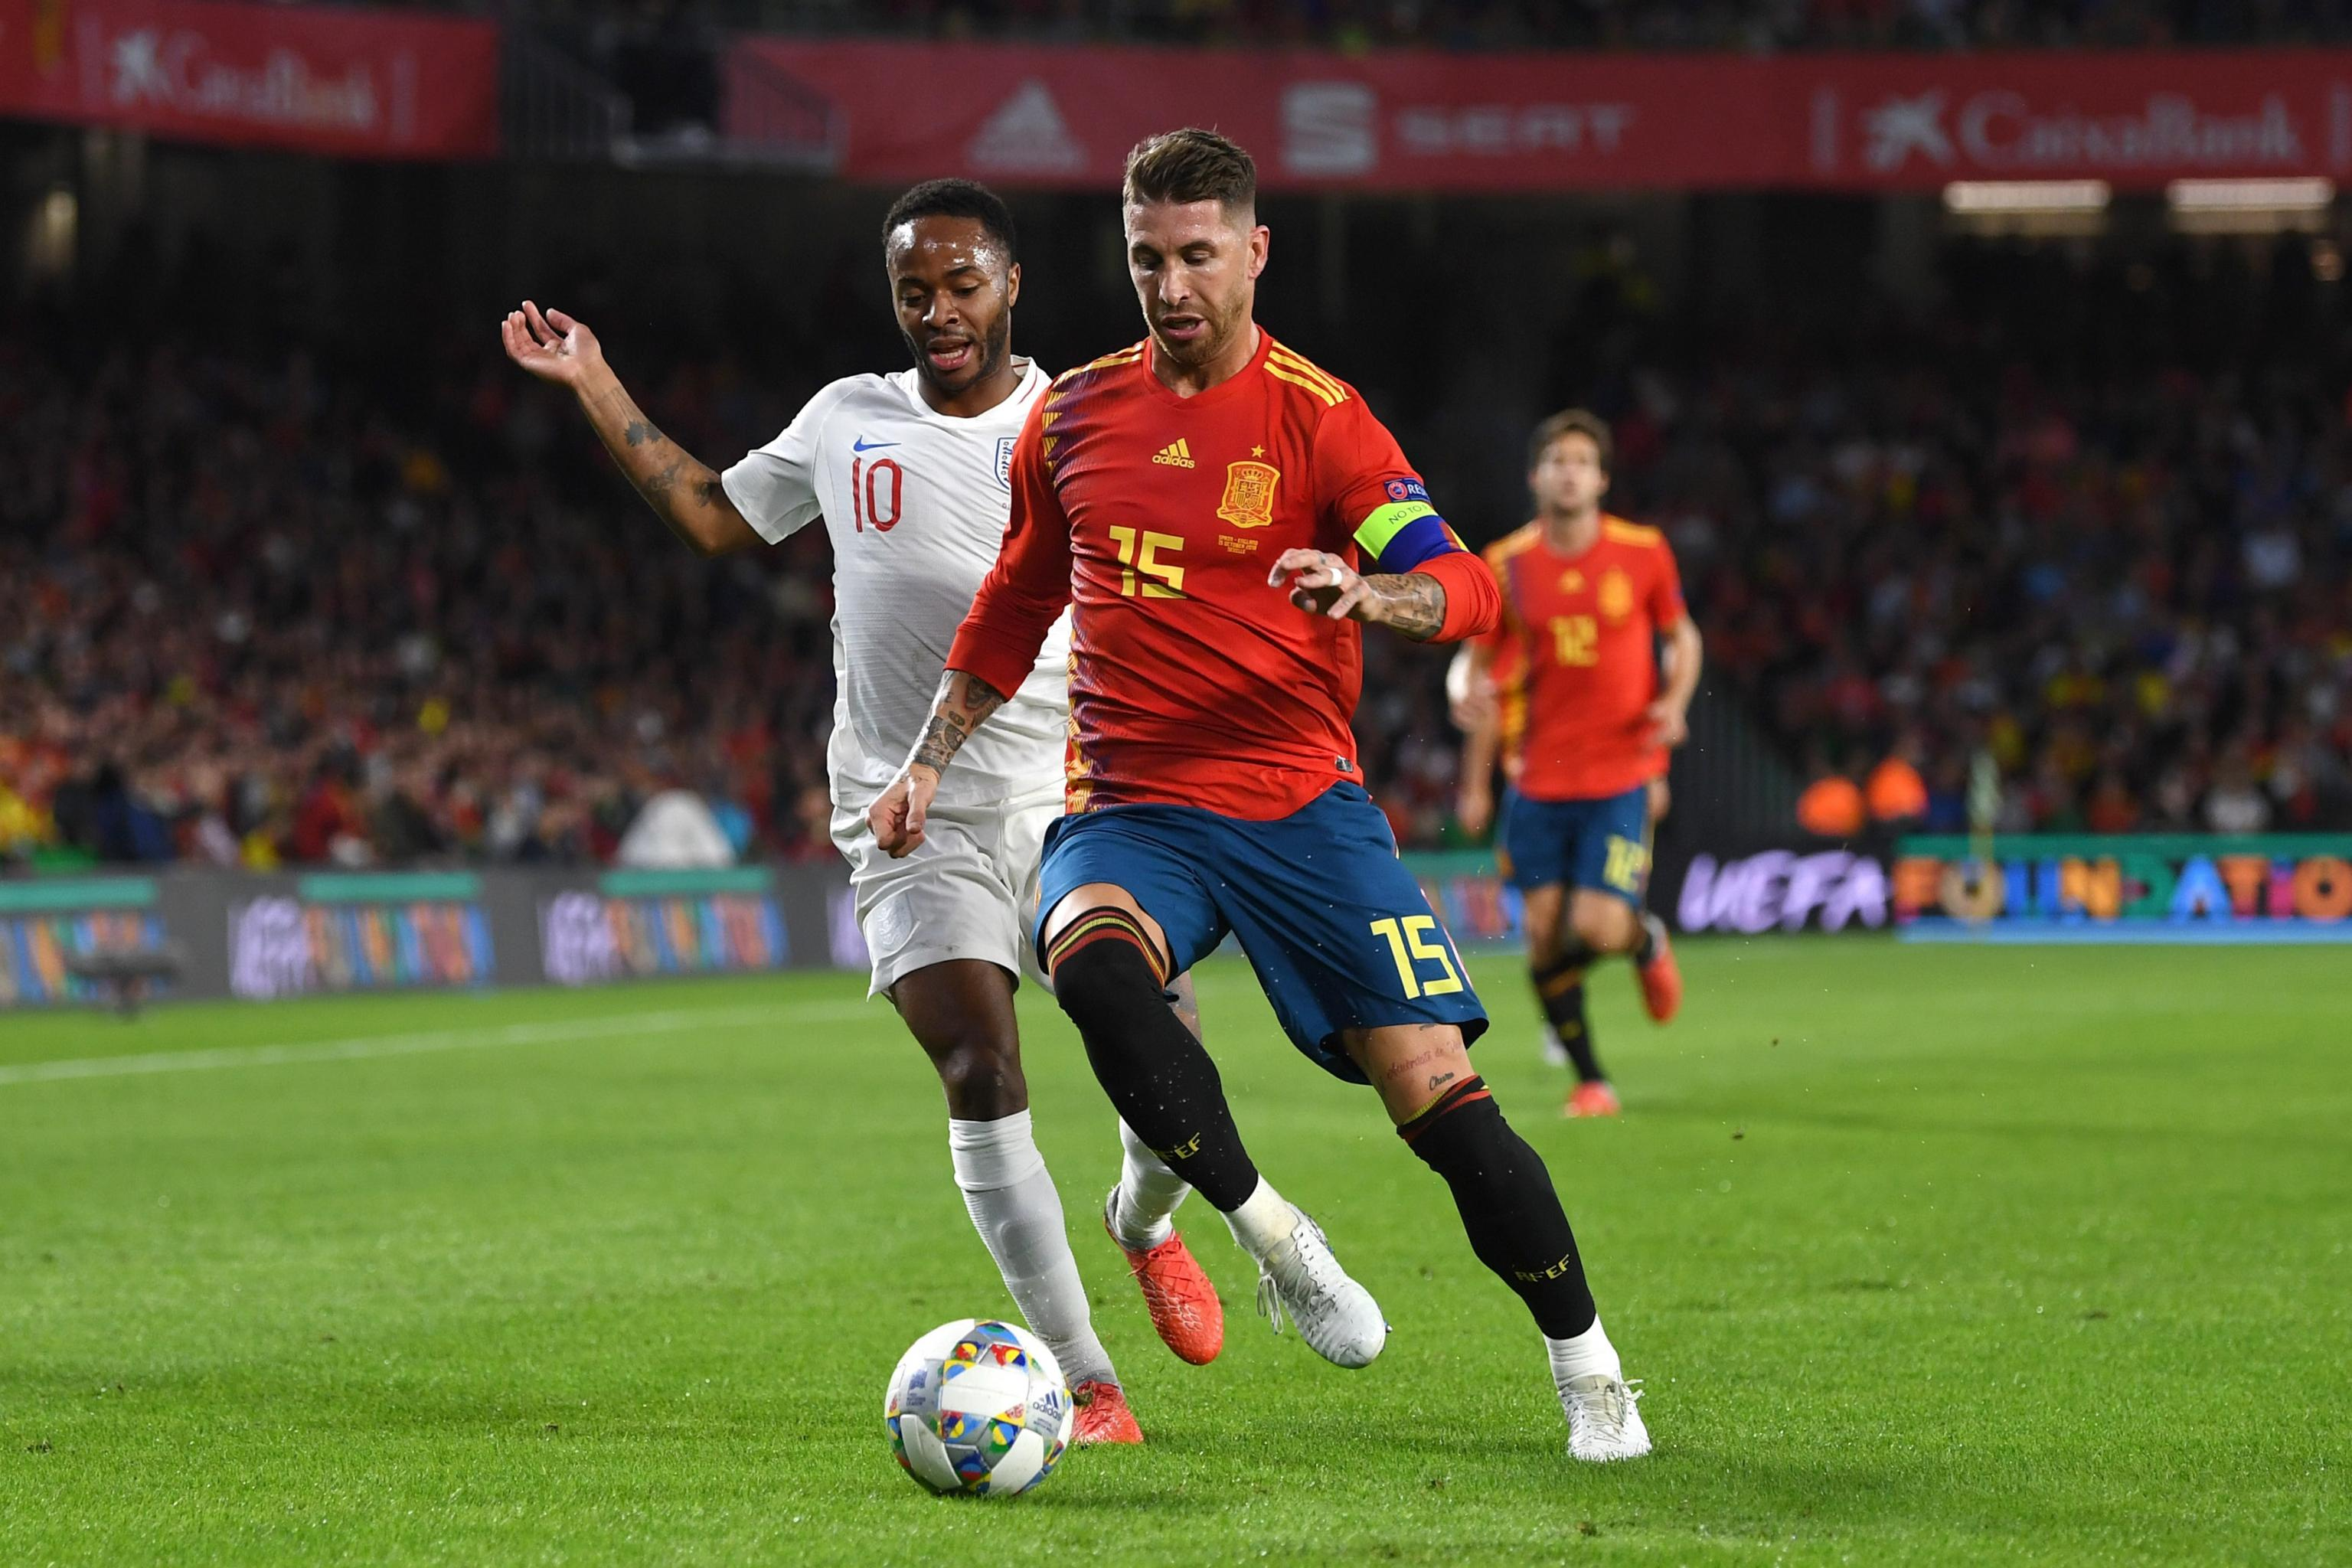 Sergio Ramos Posts Twitter Video of Incident Involving Raheem Sterling |  Bleacher Report | Latest News, Videos and Highlights